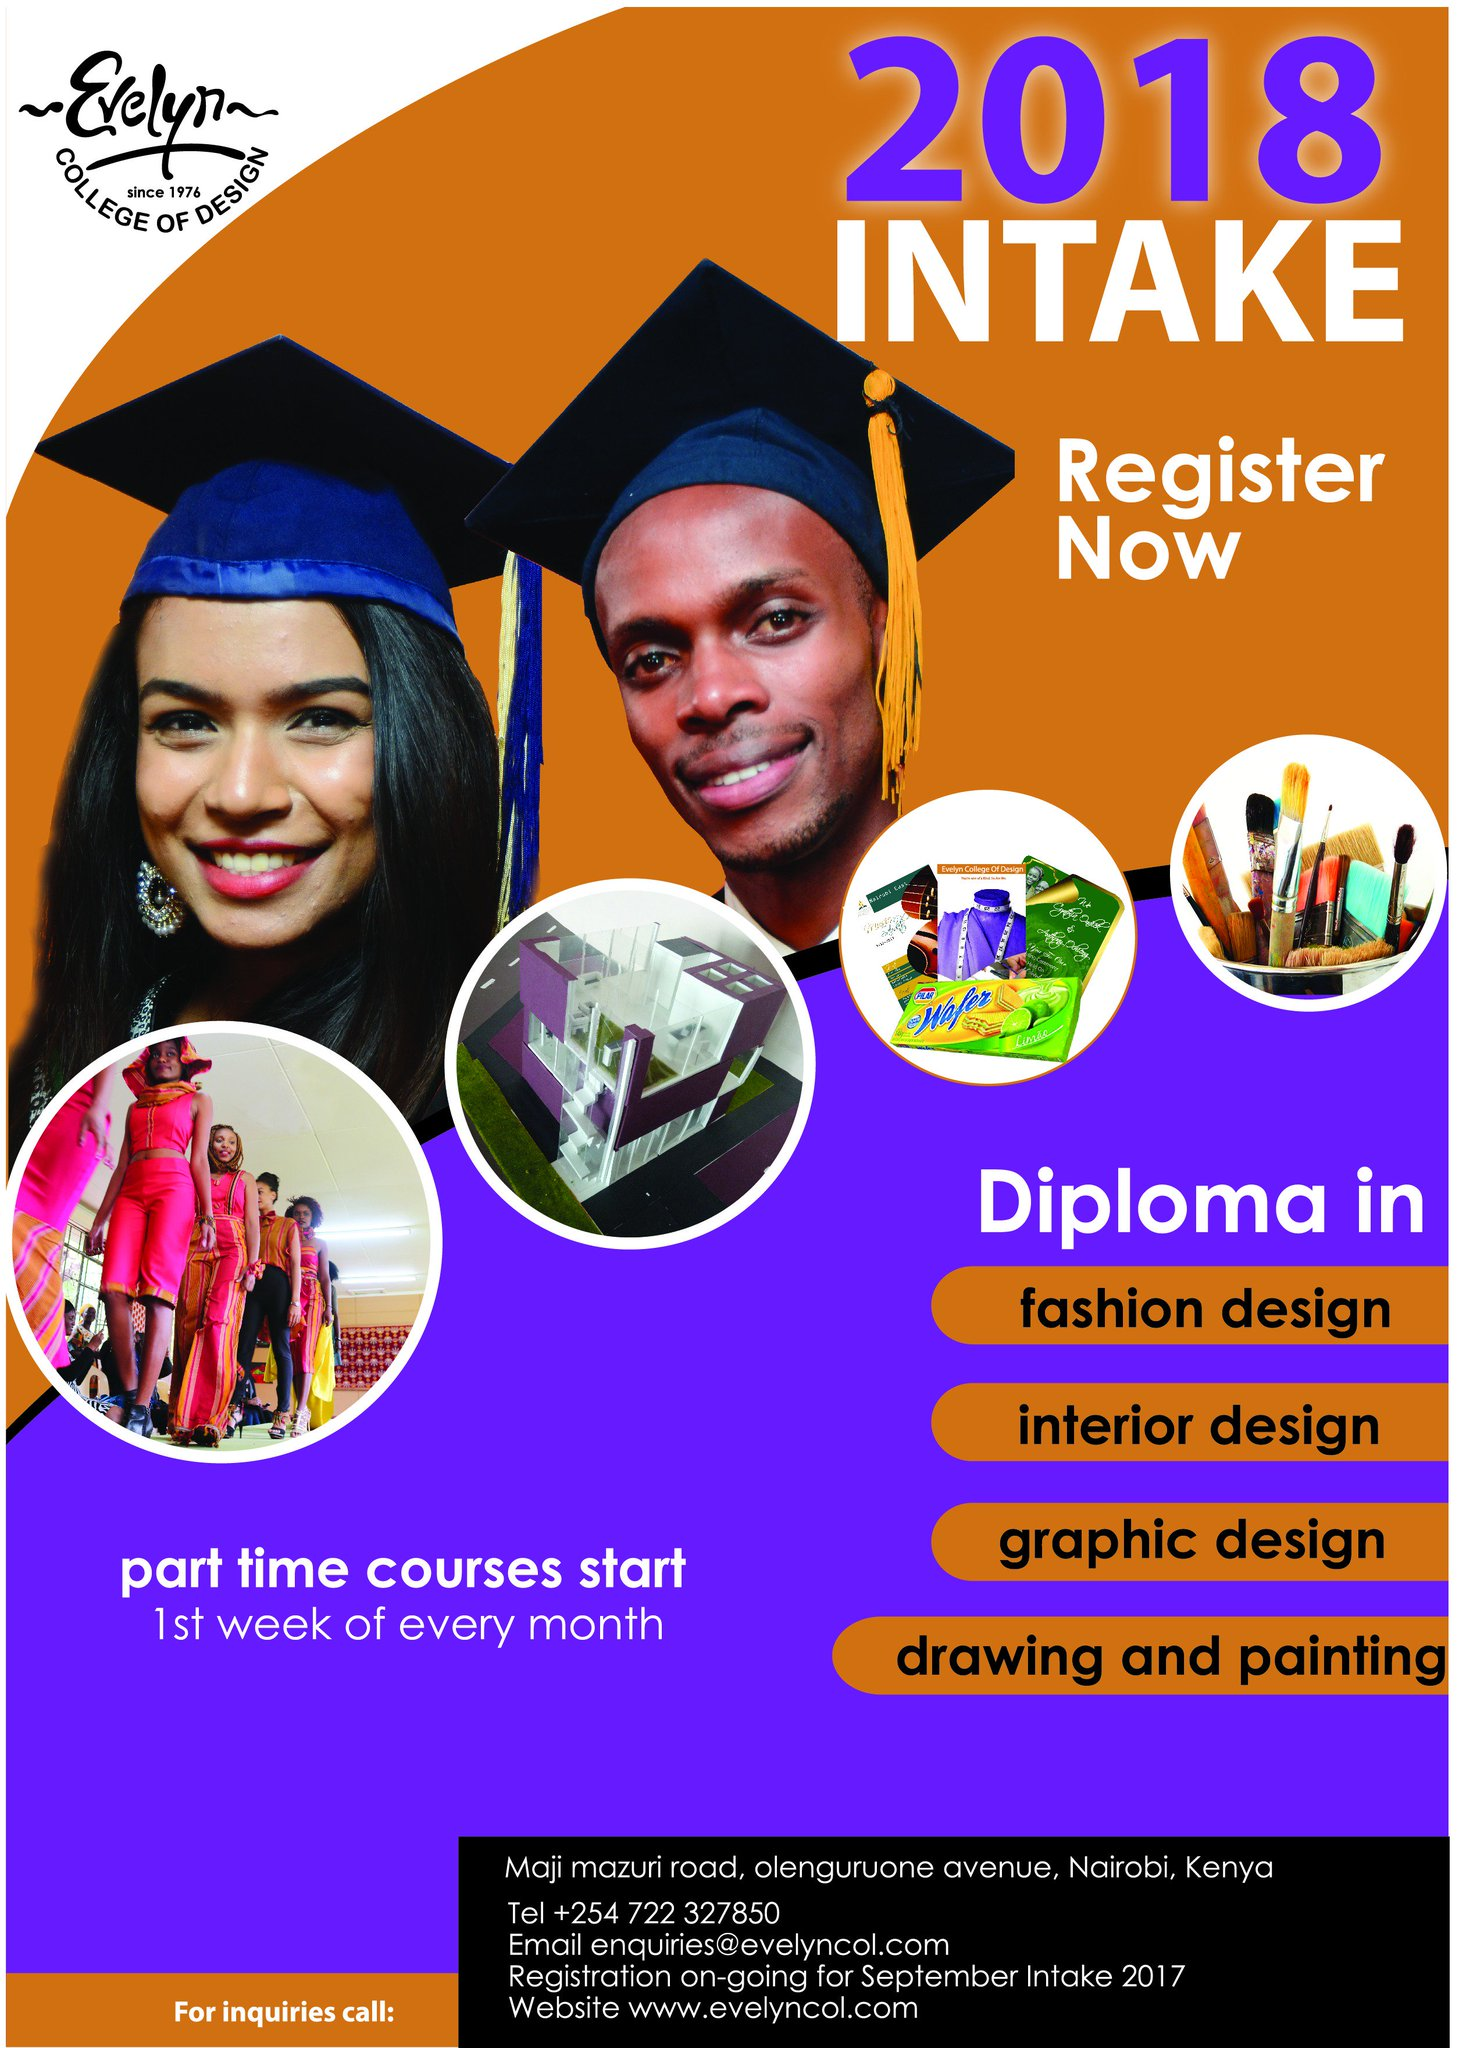 Evelyn College On Twitter Evelyn College Of Design Was Founded In 1976 As Pioneer Design Institution Offering Training In Fashion Design Interior Design Graphic Design Drawing And Painting Textile Design Photograhy Https T Co R5n9igrbzu